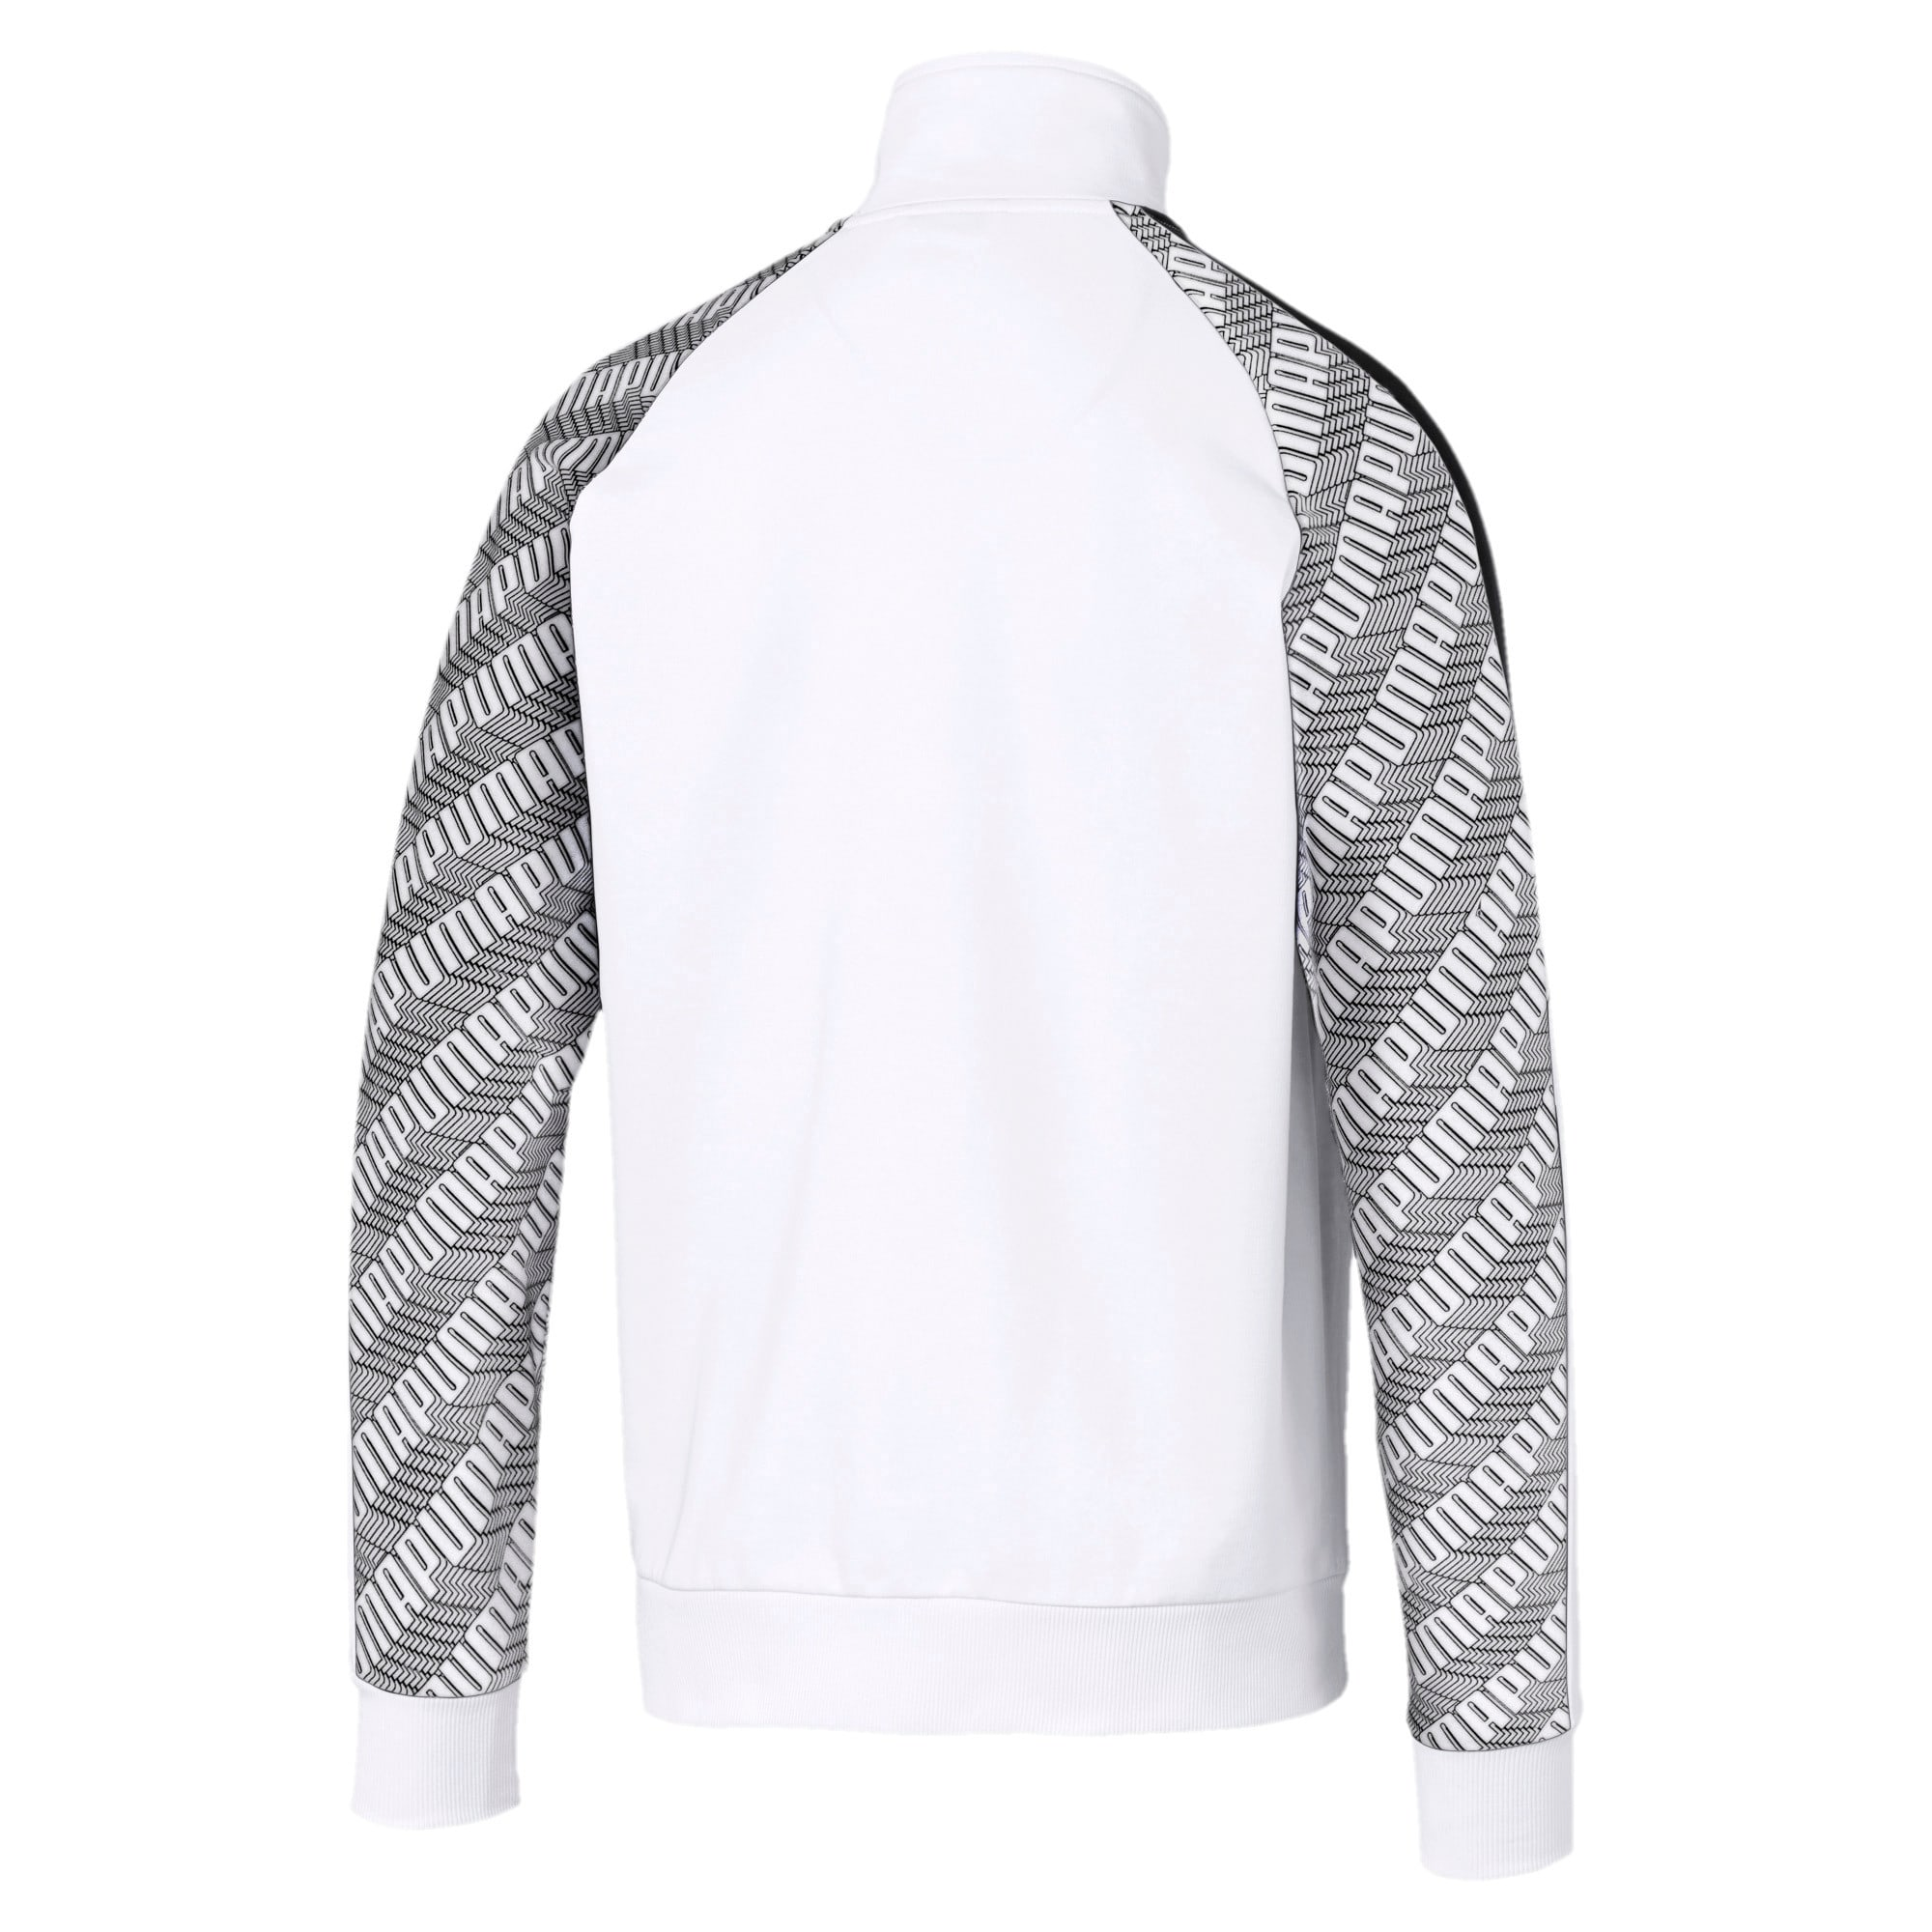 Thumbnail 2 of T7 All-Over Printed Men's Track Jacket, Puma White-Repeat logo, medium-IND